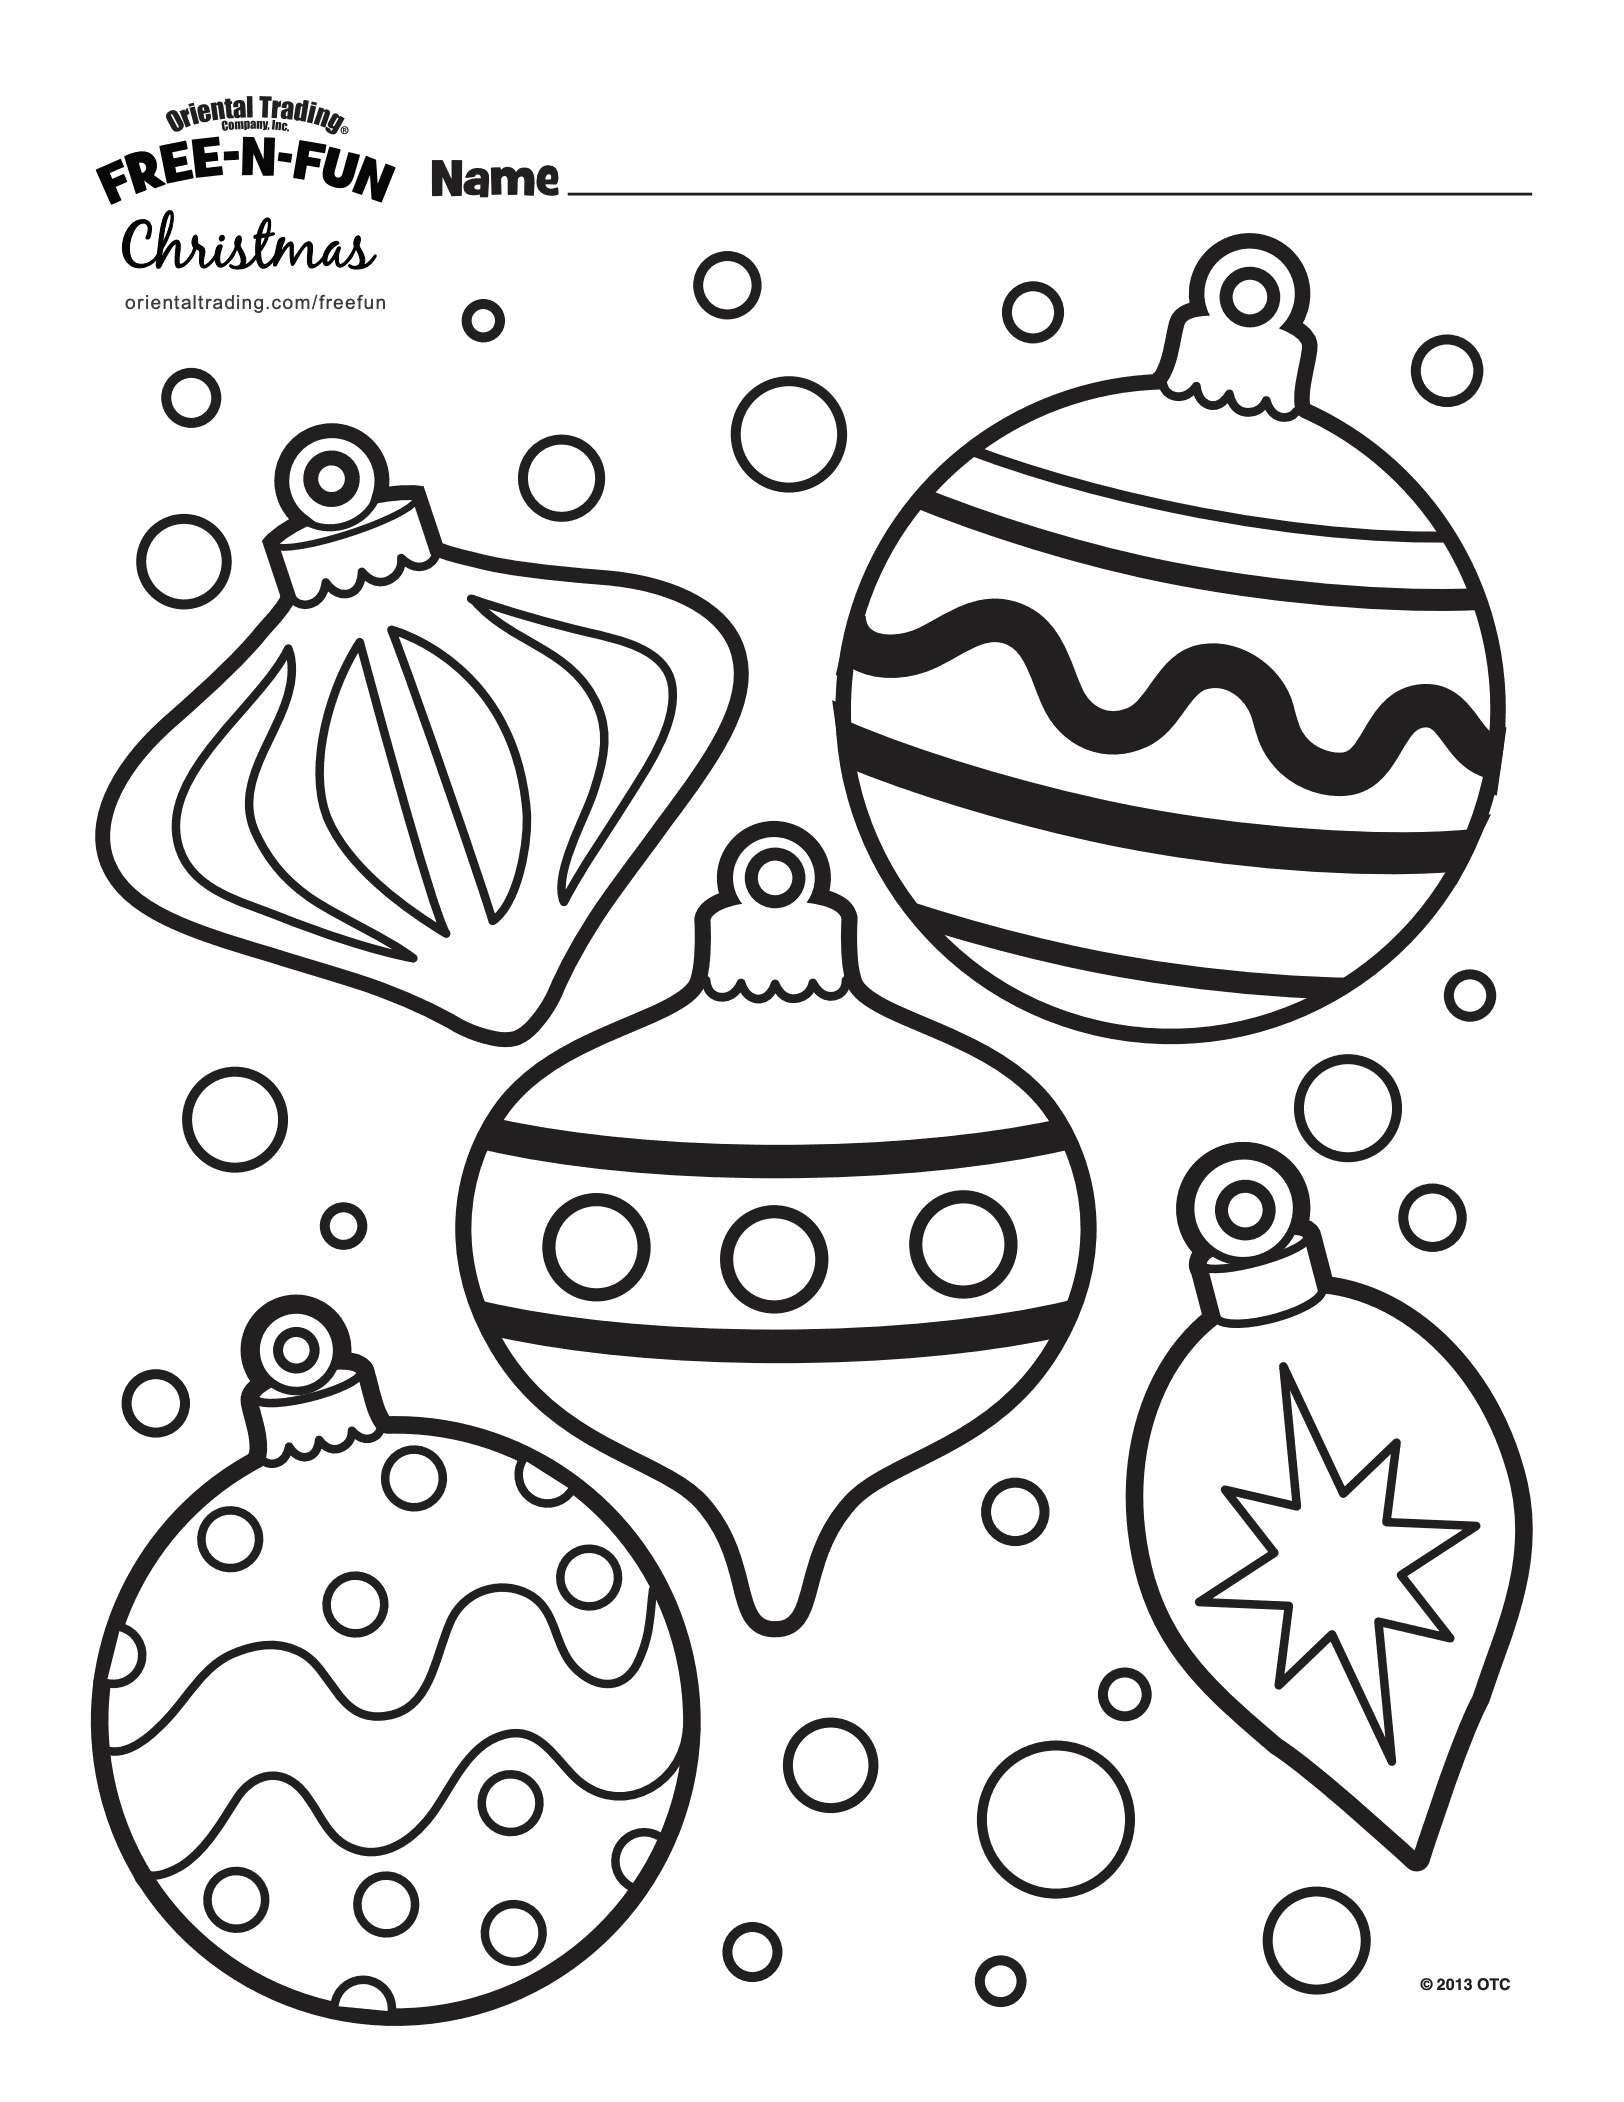 Christmas ornaments colour page template for kids